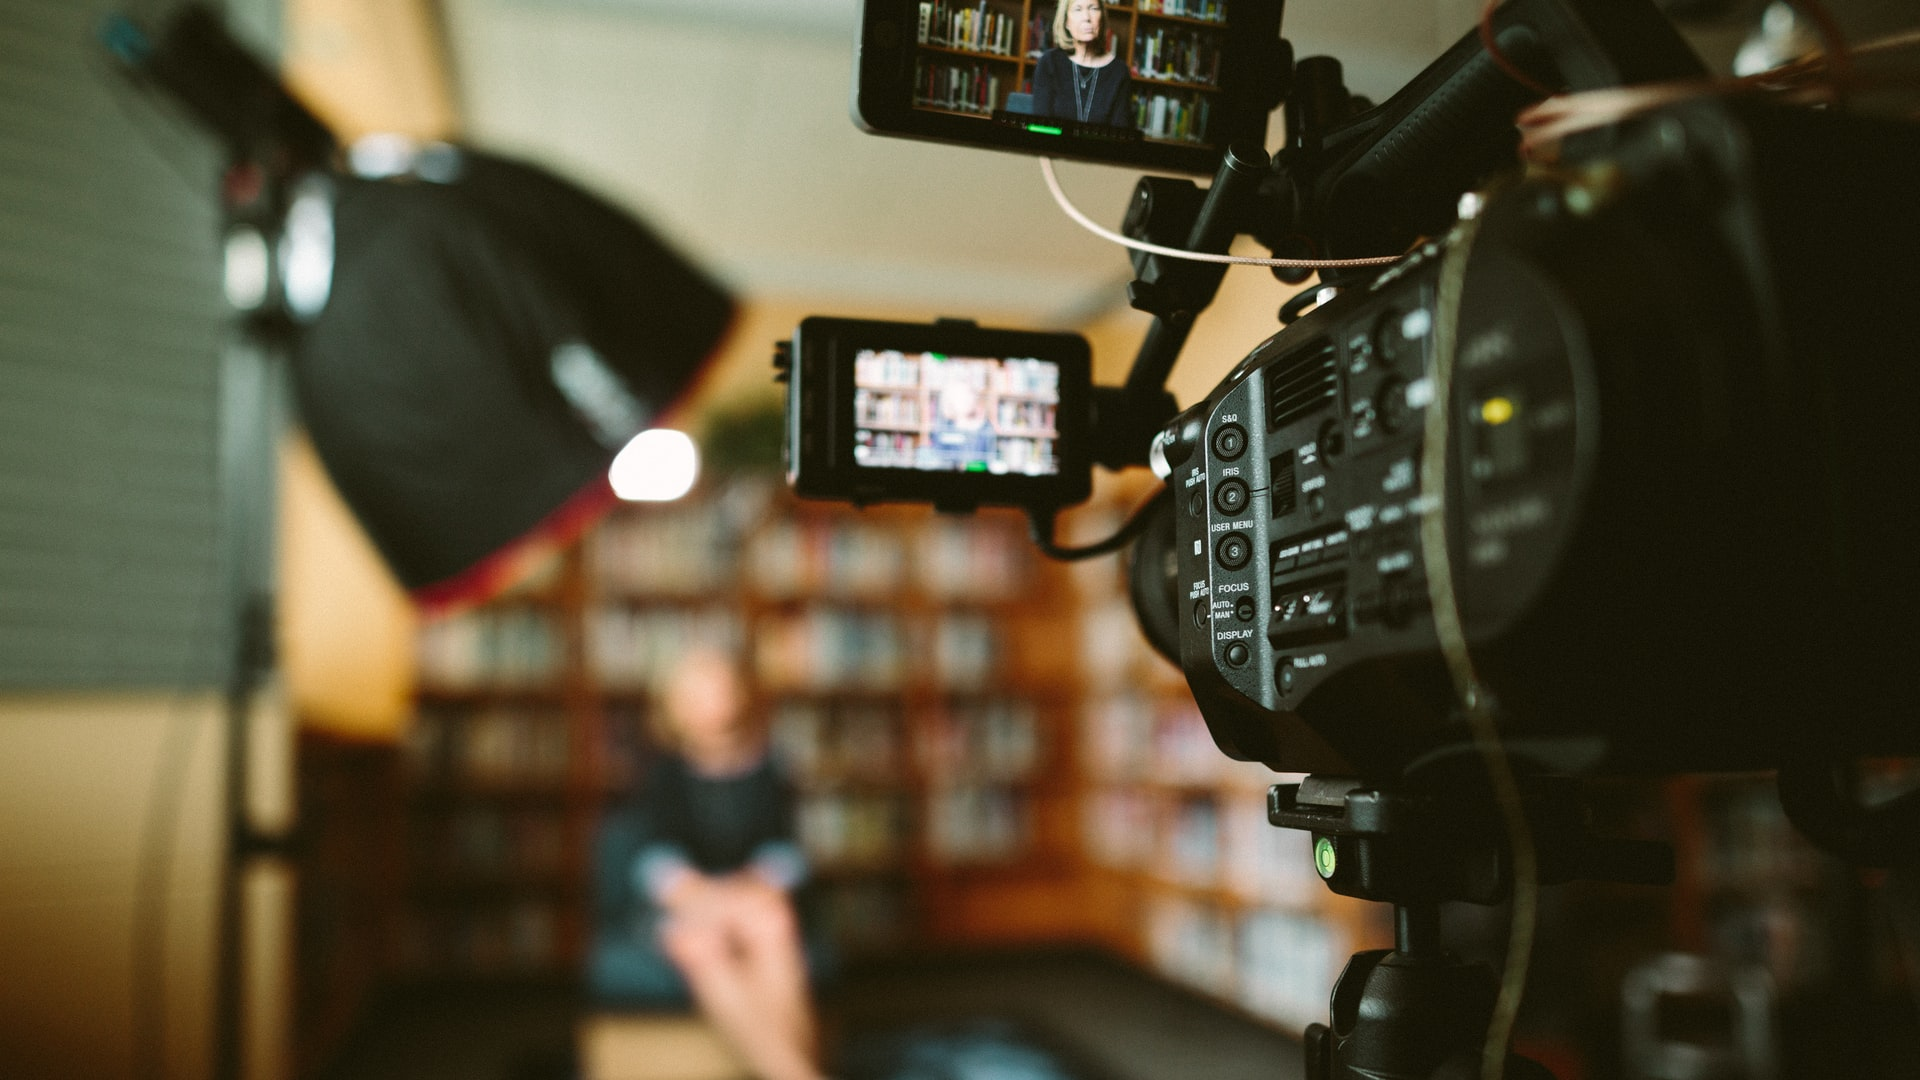 Leave a Lasting Impression with a Great Video Marketing Strategy